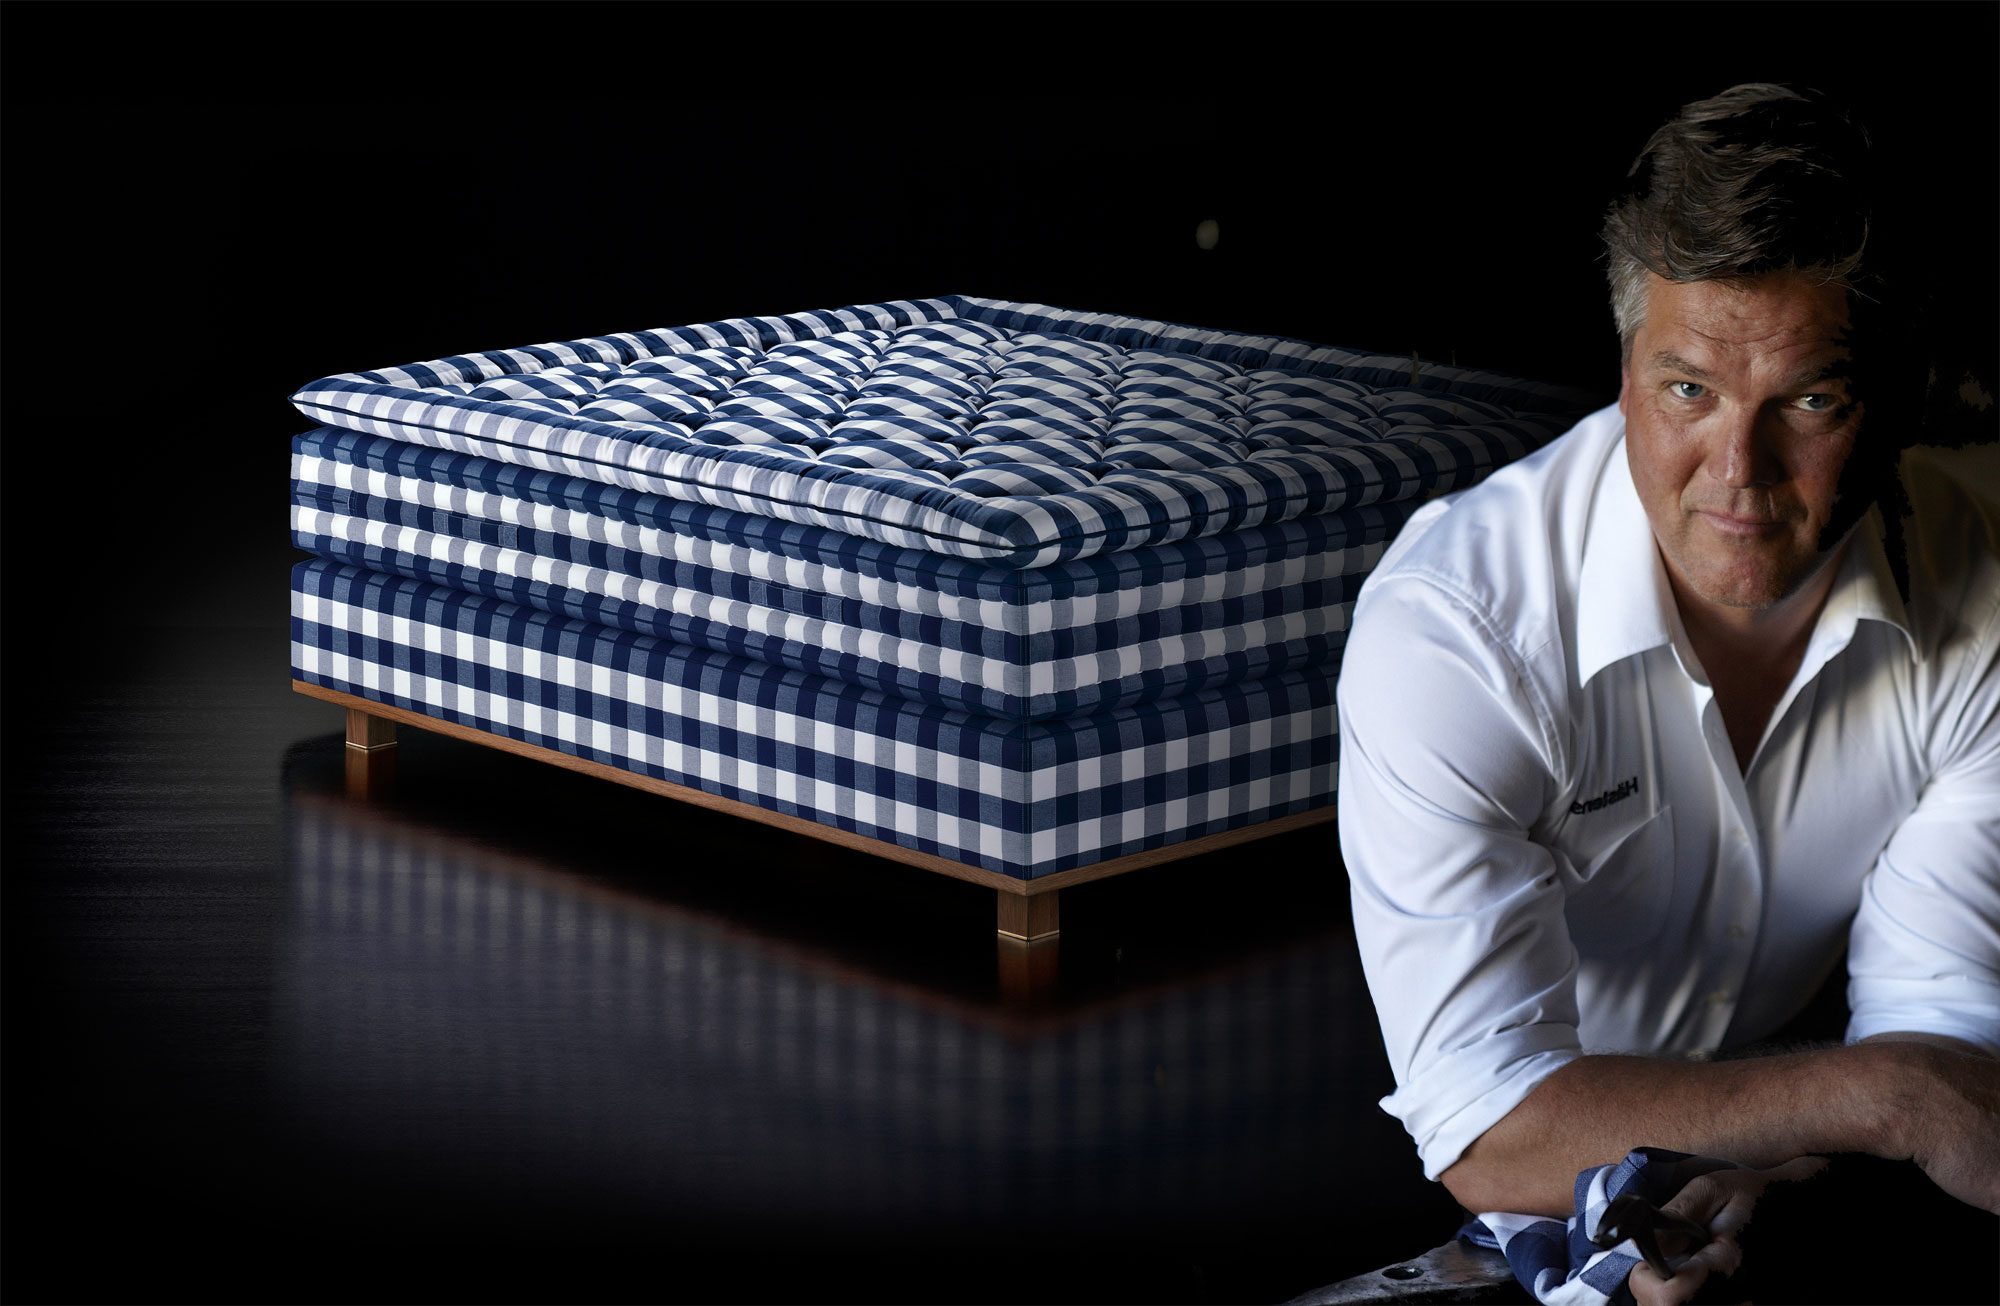 Is The Hästens Vividus The World's Most Luxurious Bed?